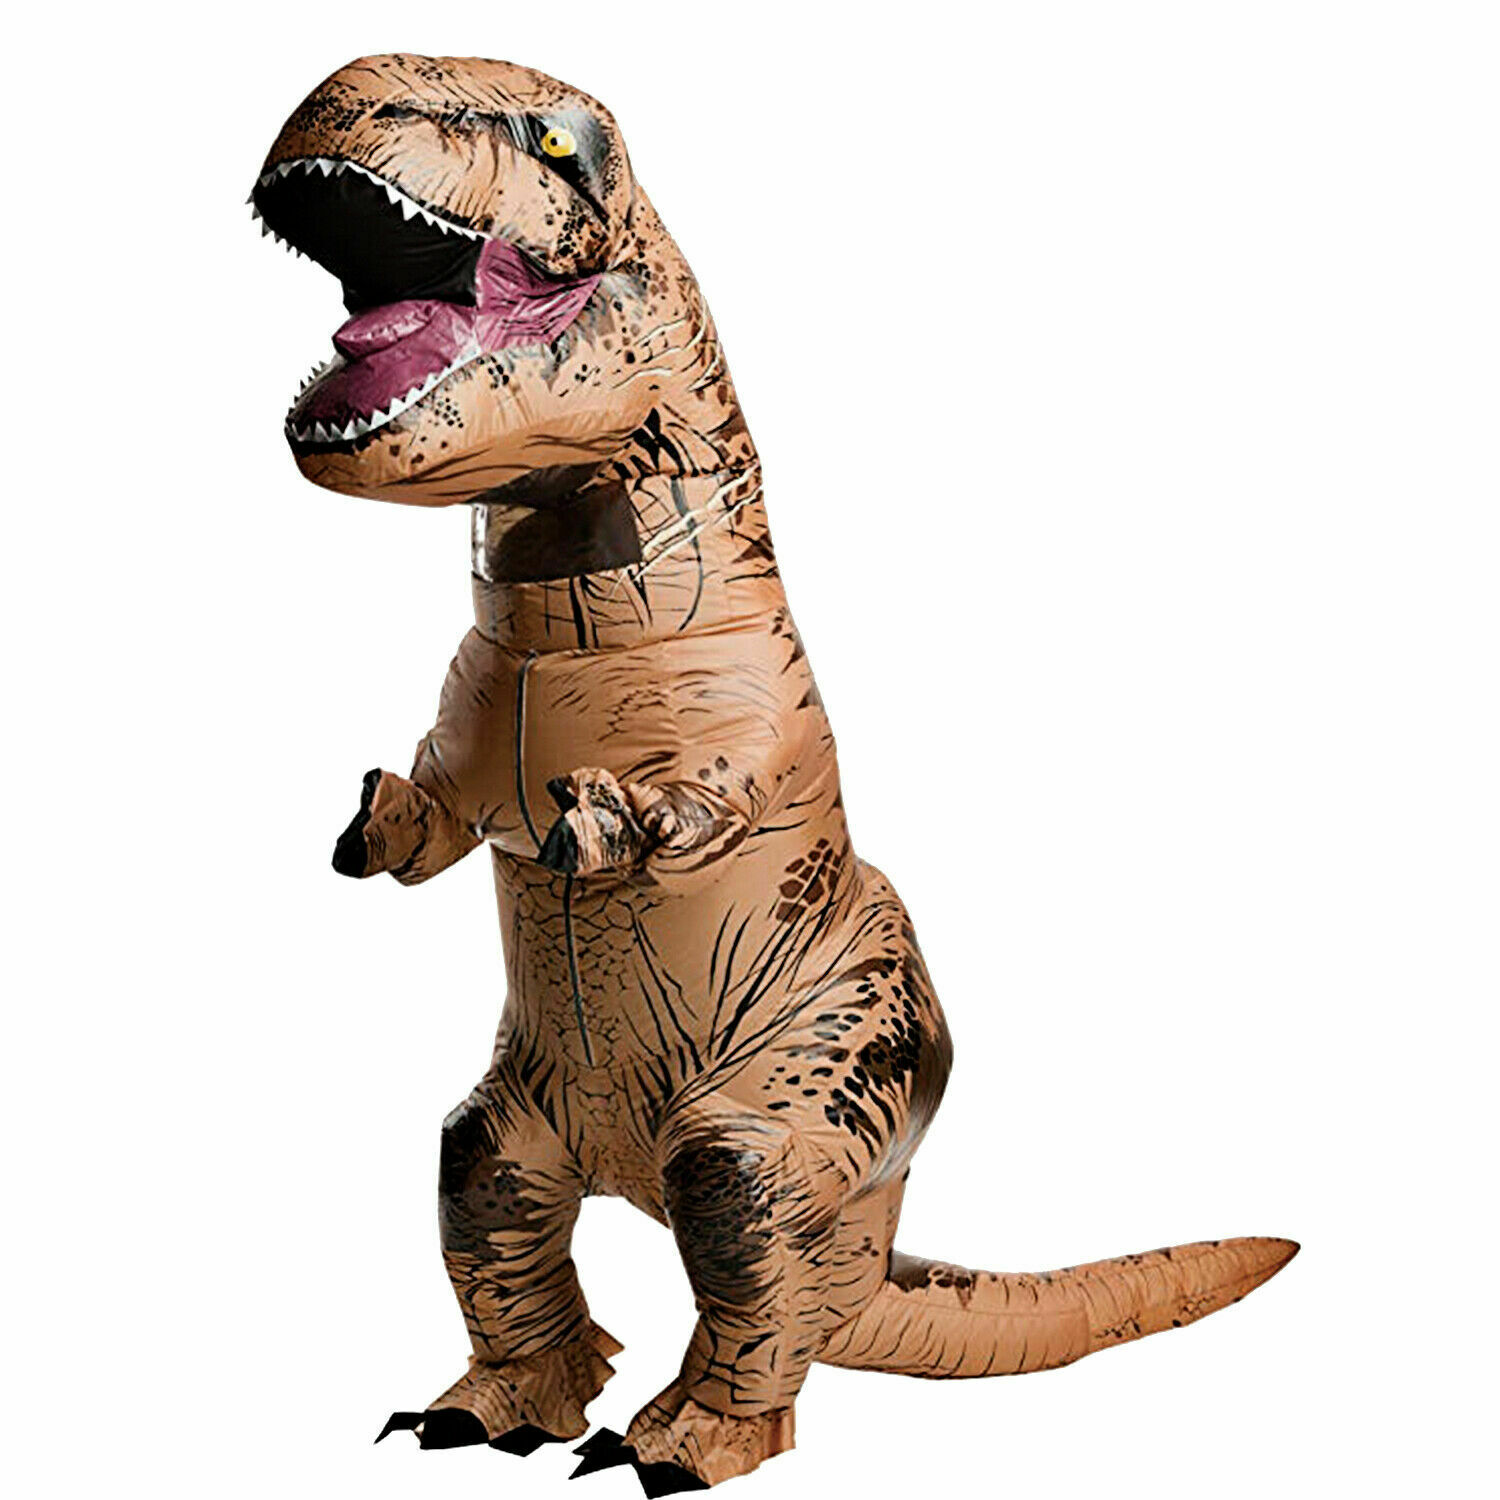 T-REX Dinosaur Inflatable Costume Suit Outfit w/Batteries Fans For Kids Cosplay Clothing, Shoes & Accessories